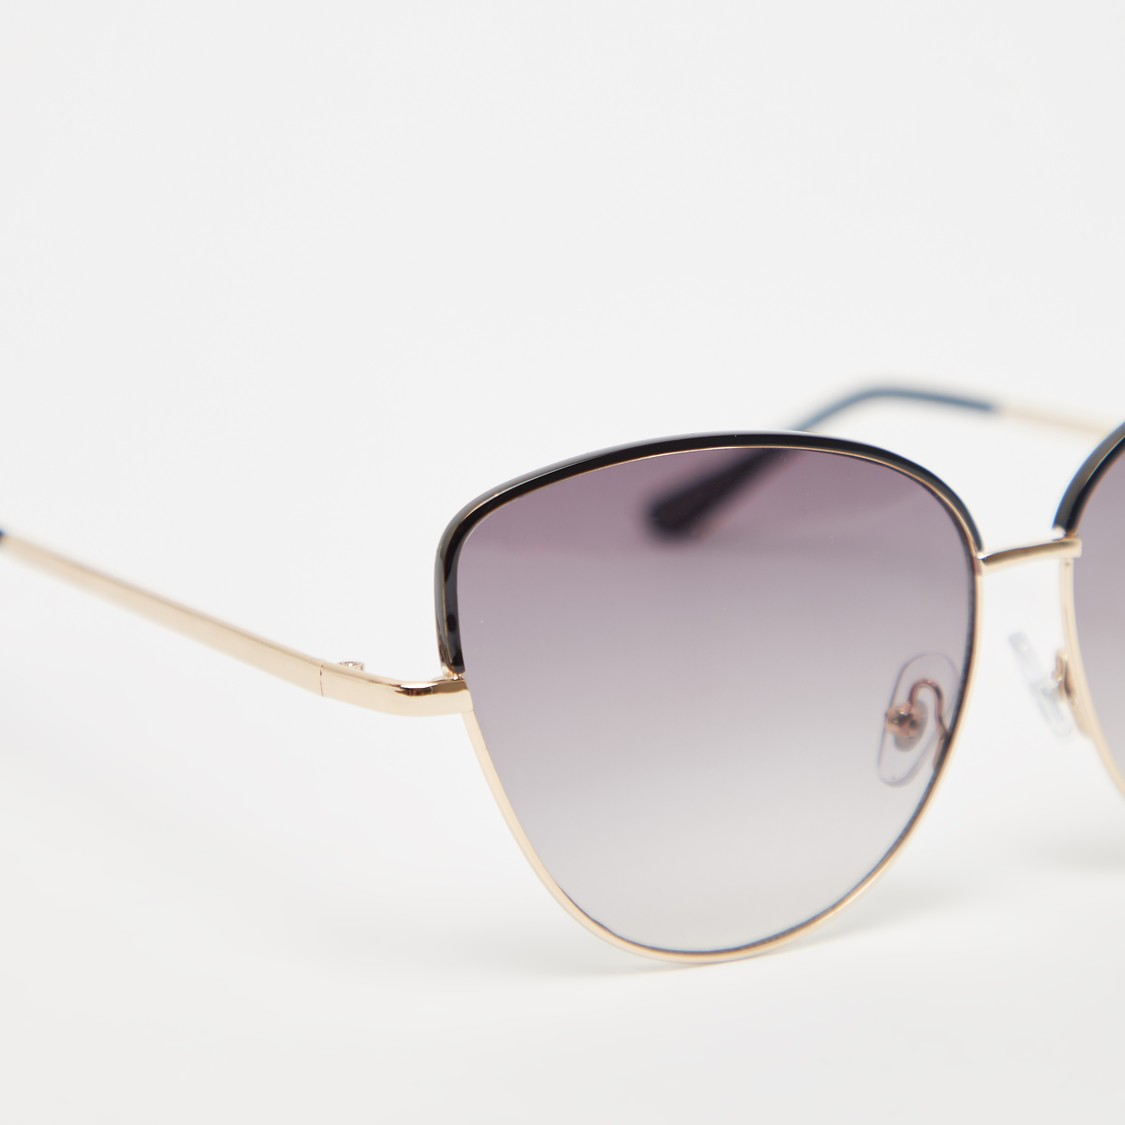 Full Rim Solid Cat Eye Sunglasses with Nose Pads